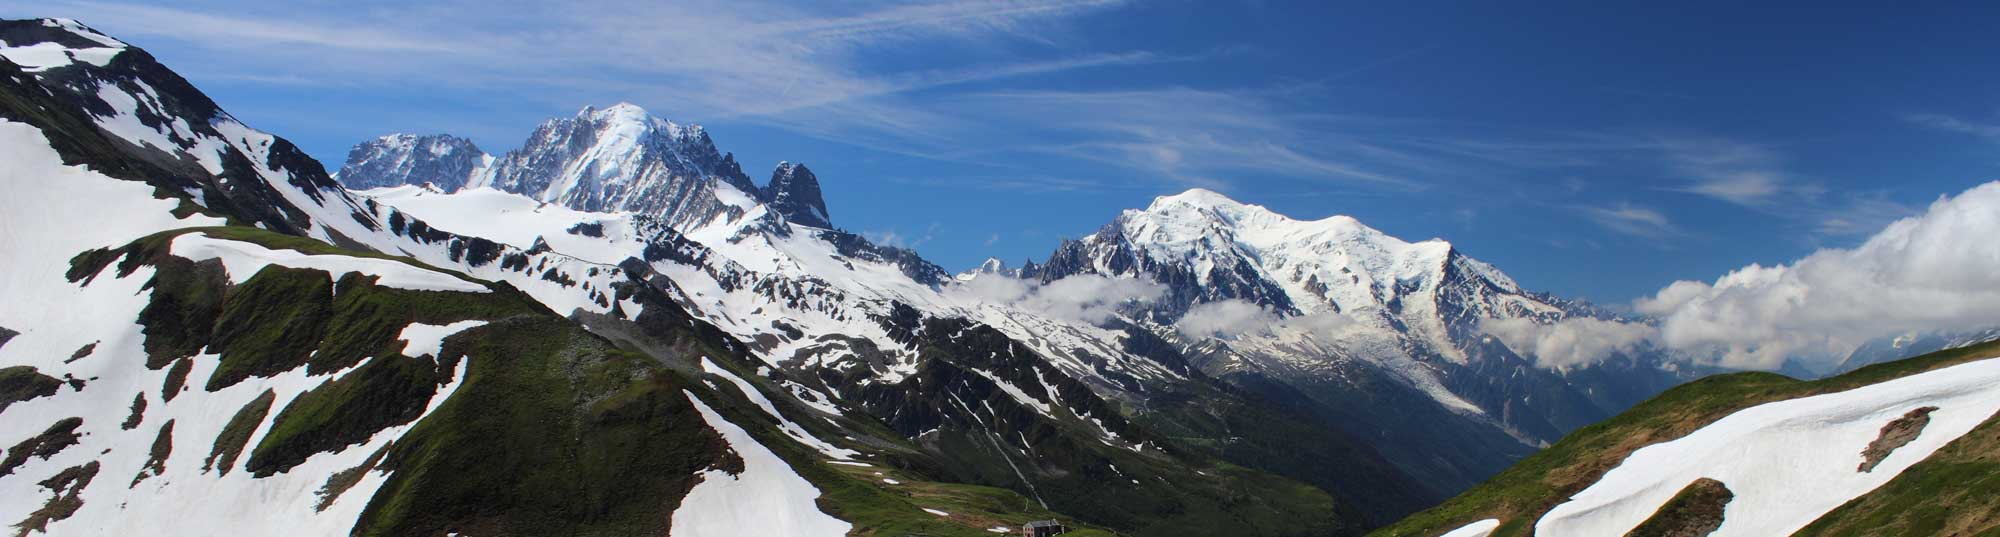 @savoredjourneys's cover photo for '3 Incredibly Beautiful Year-Round Destinations in the French Alps | Savored Journeys'